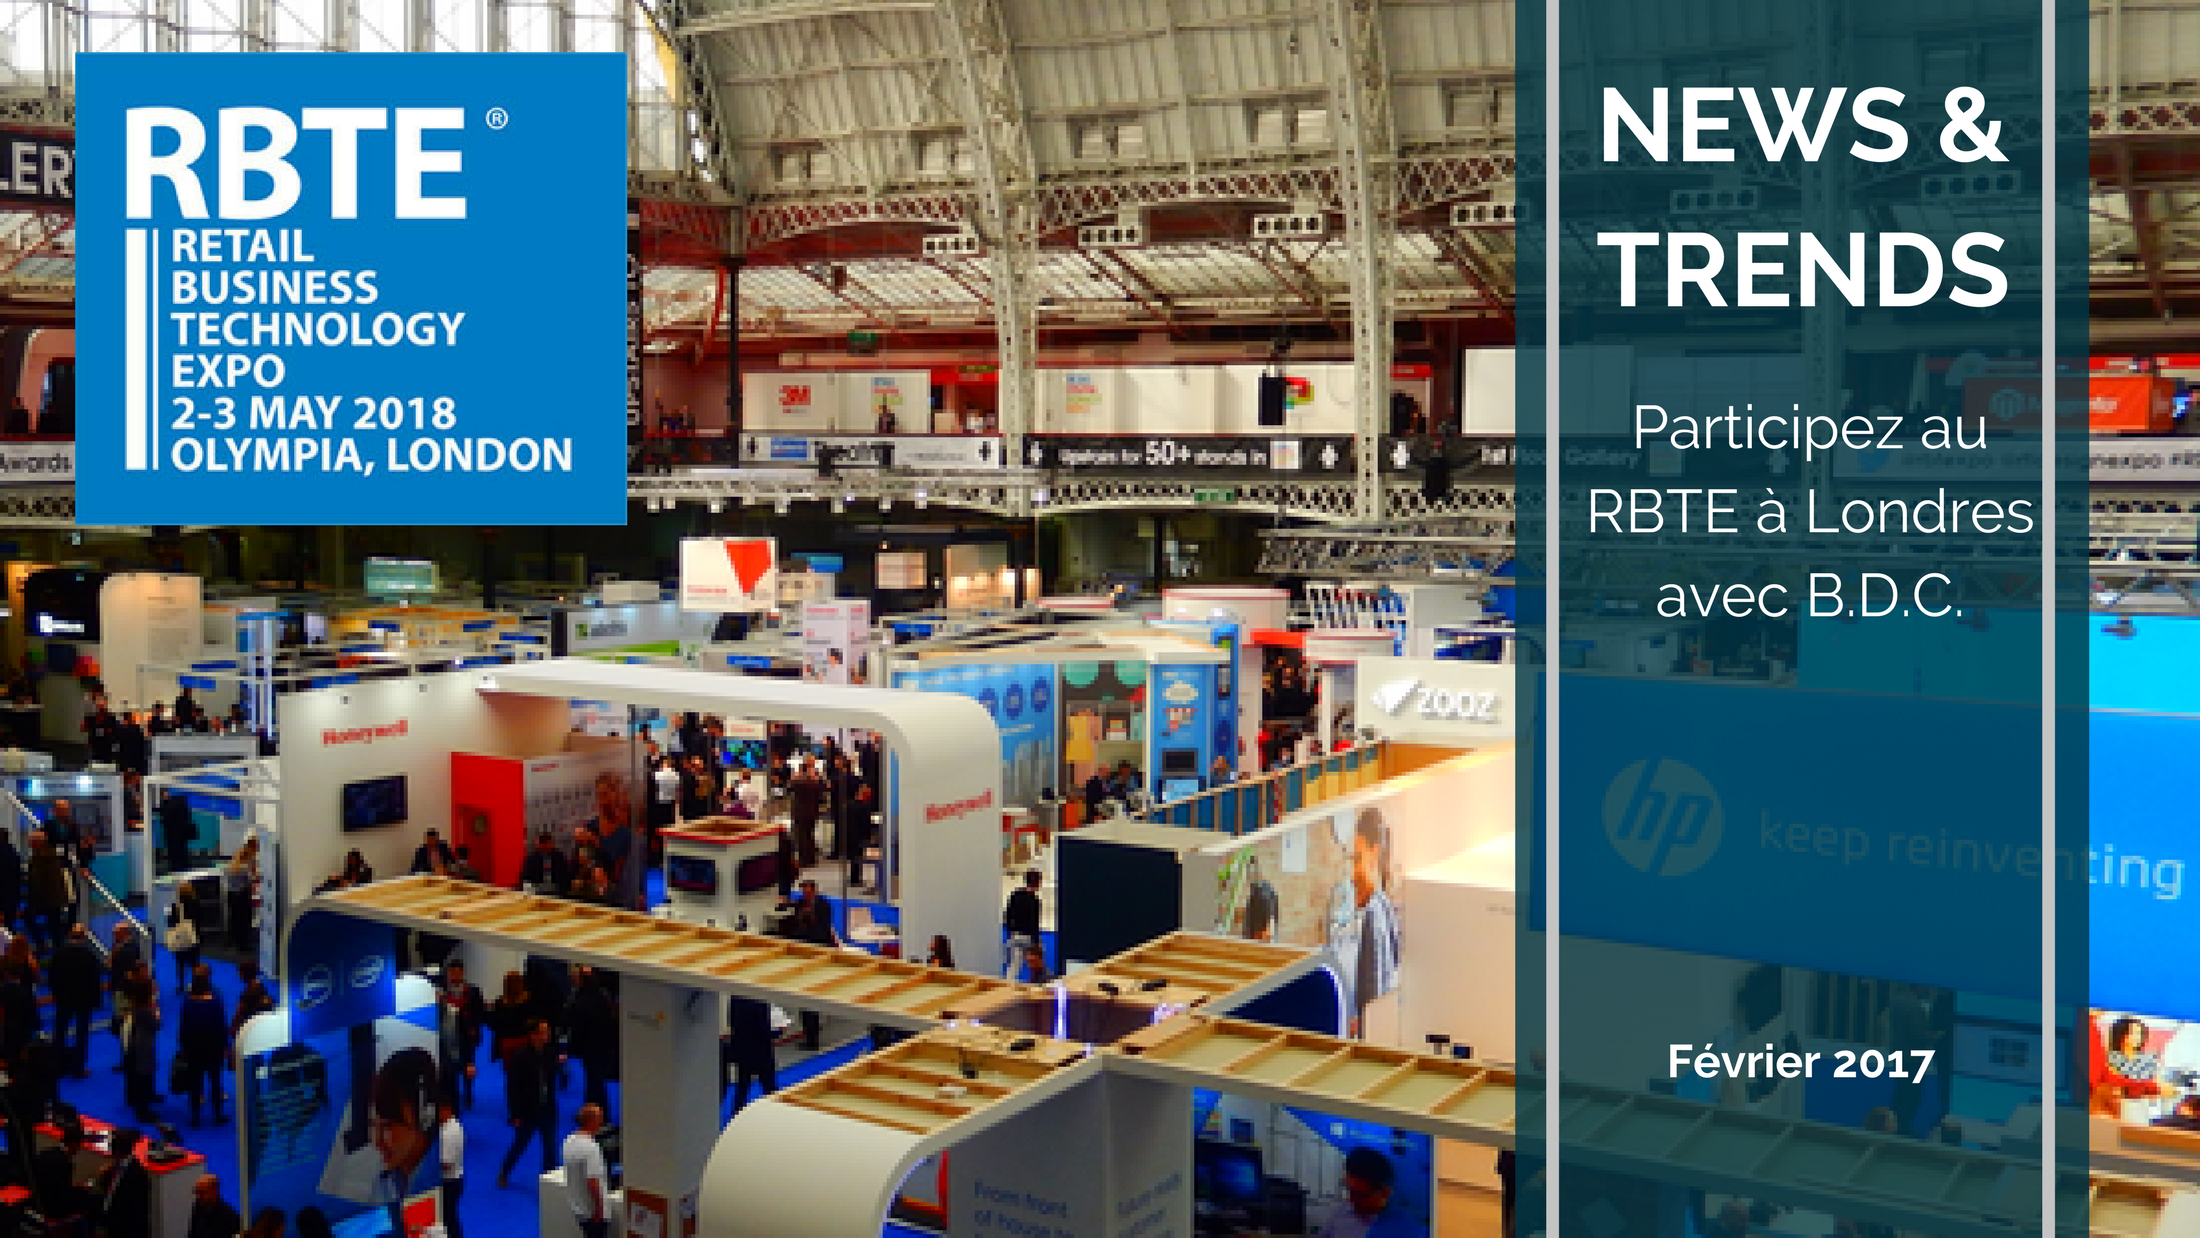 Trends News suite 6 - Participez au Retail Business Technology Expo (RBTE) avec B.D.C.